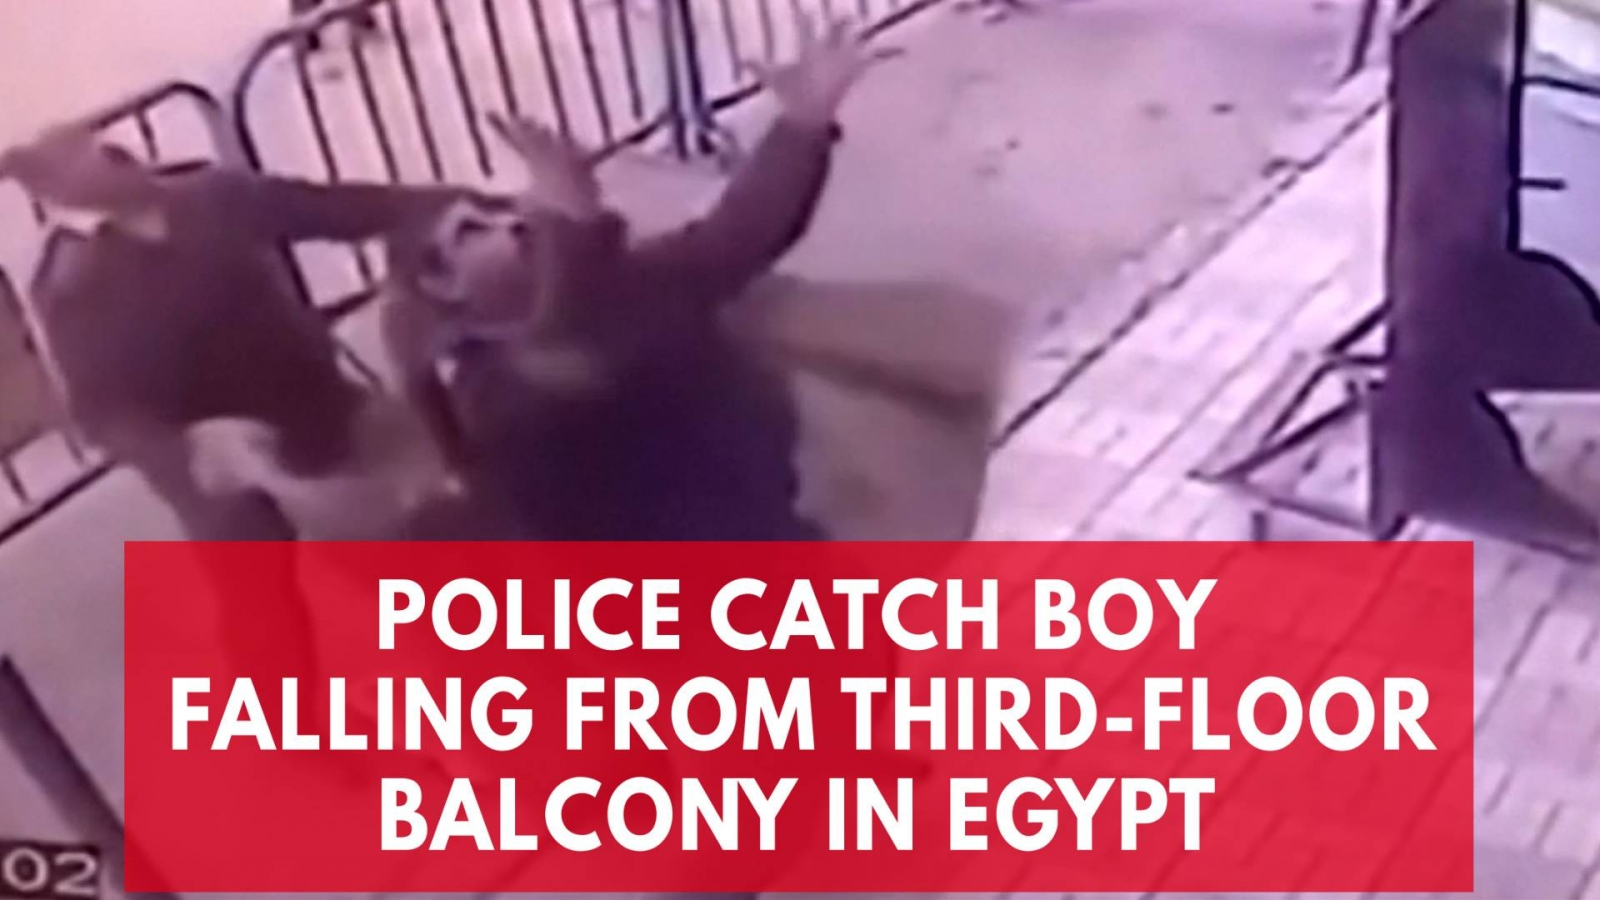 Watch: Policemen in Egypt catching a boy falling from a third-floor balcony